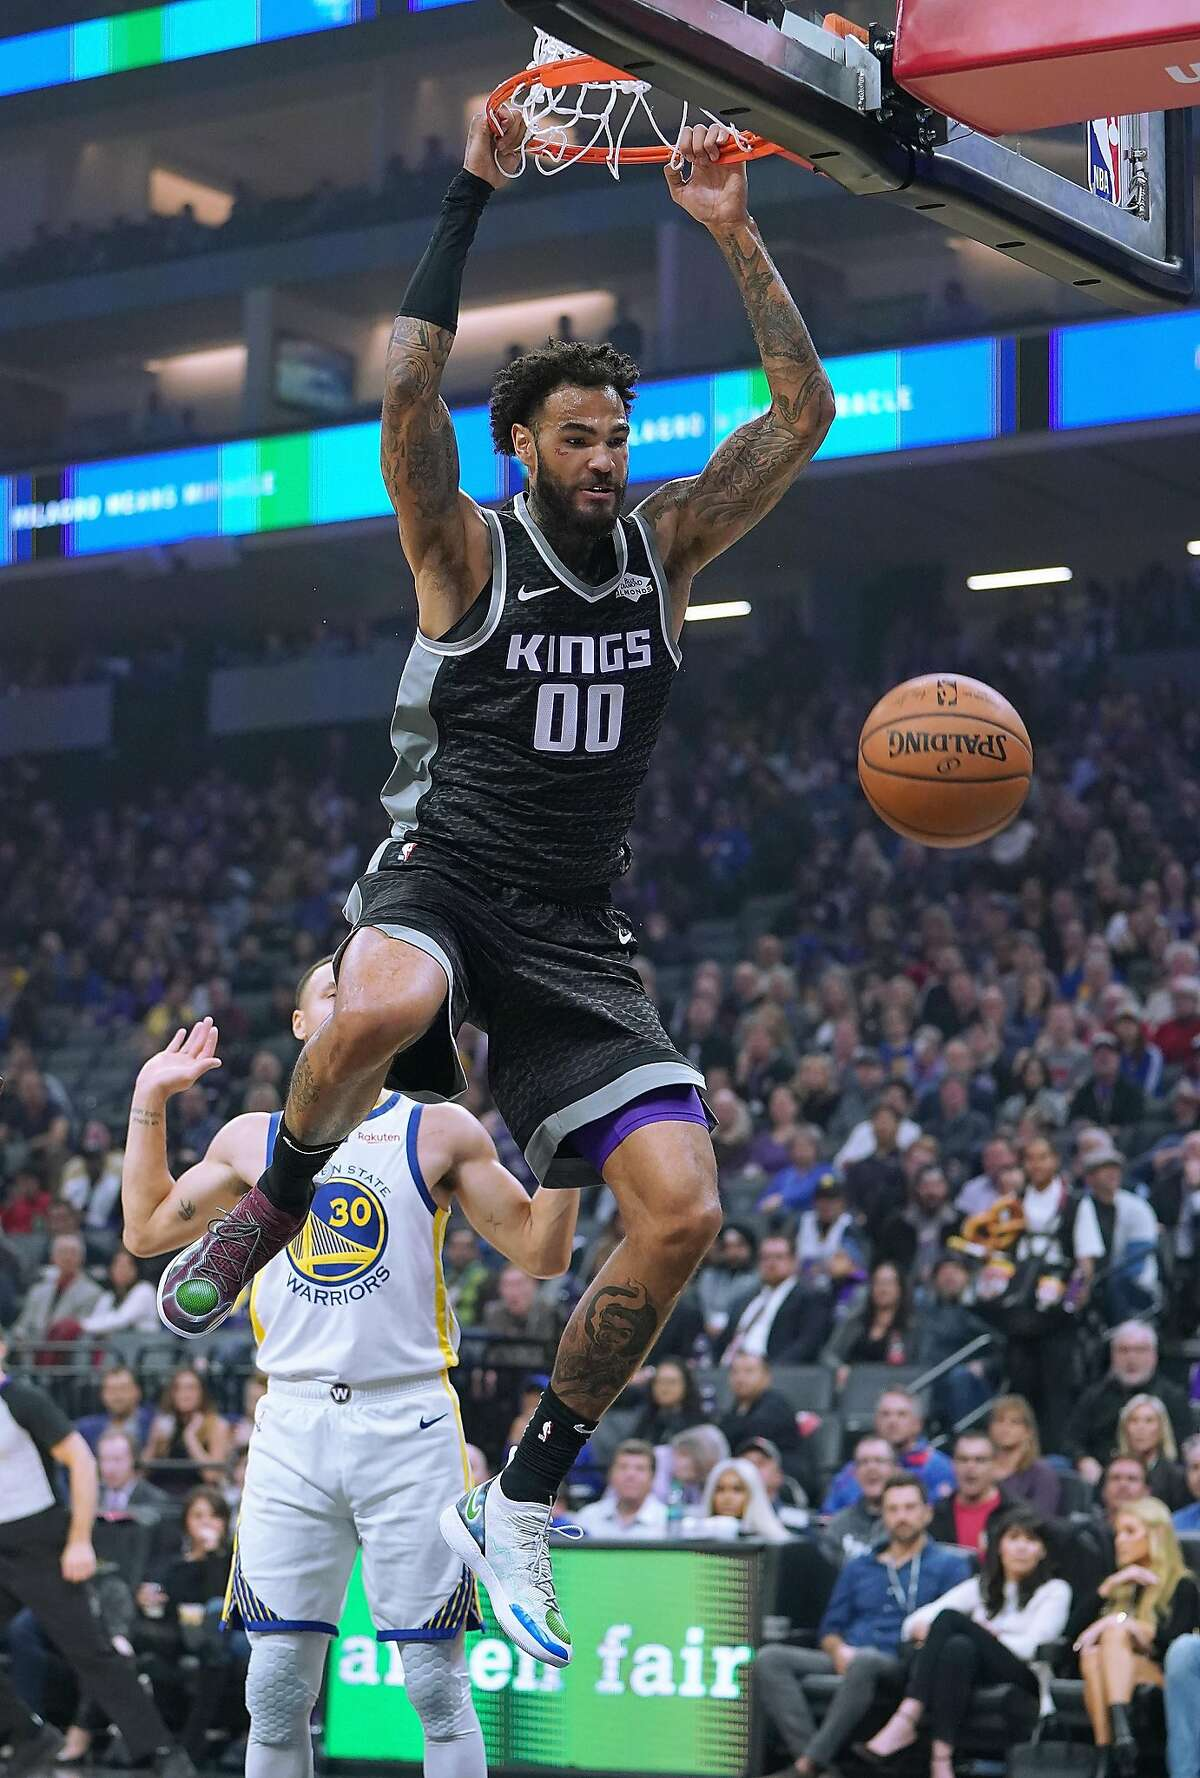 FILE - Willie Cauley-Stein of the Sacramento Kings goes up for a slam dunk against the Golden State Warriors during an NBA basketball game at Golden 1 Center on December 14, 2018 in Sacramento, California. Cauley-Stein agreed to sign with the Warriors last week in what's been a busy offseason for the Dubs.